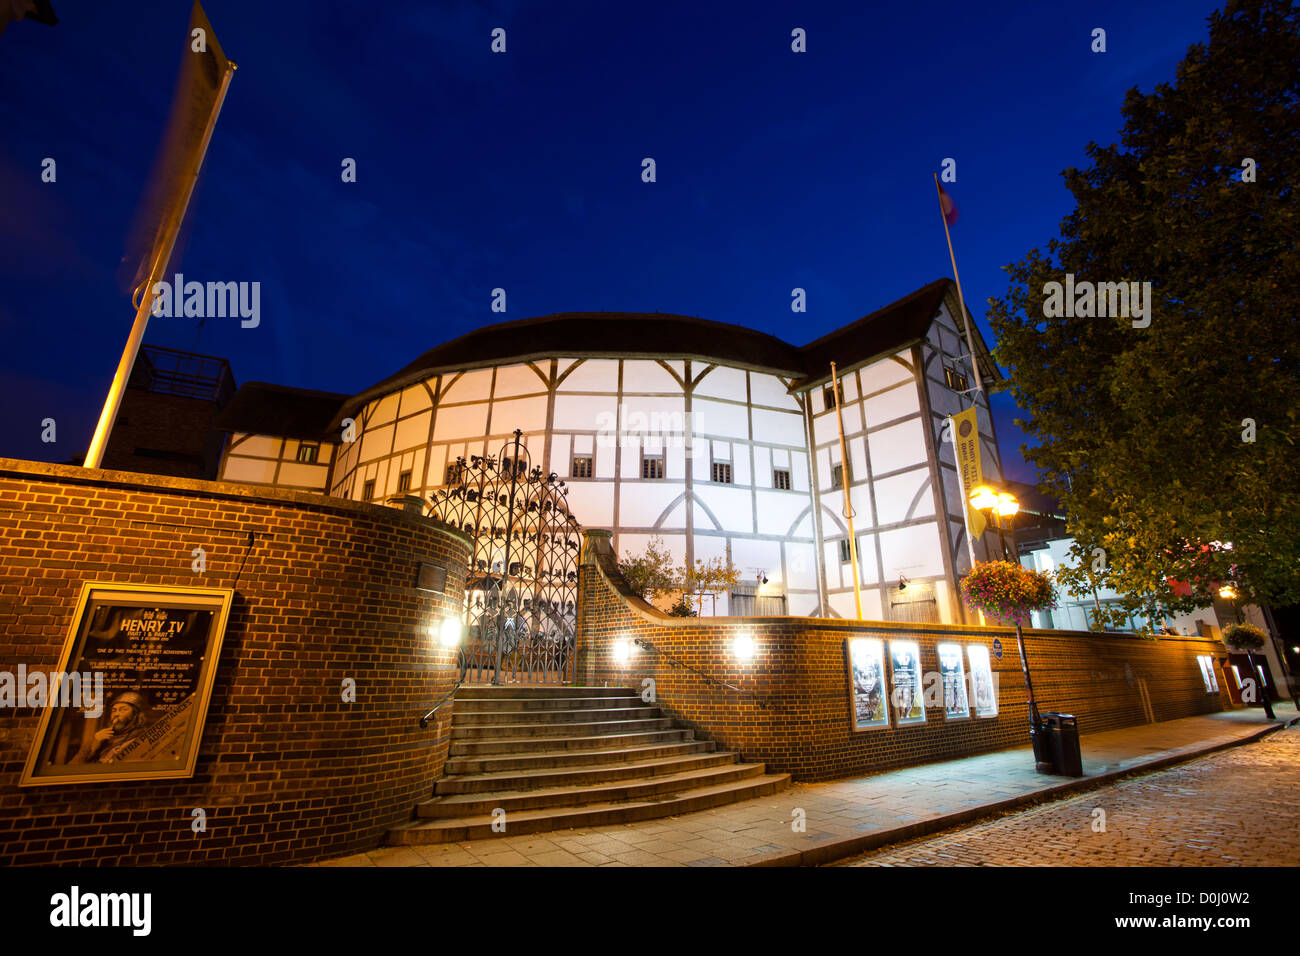 A view of Shakespeare's Globe Theatre on the banks of the river Thames. - Stock Image